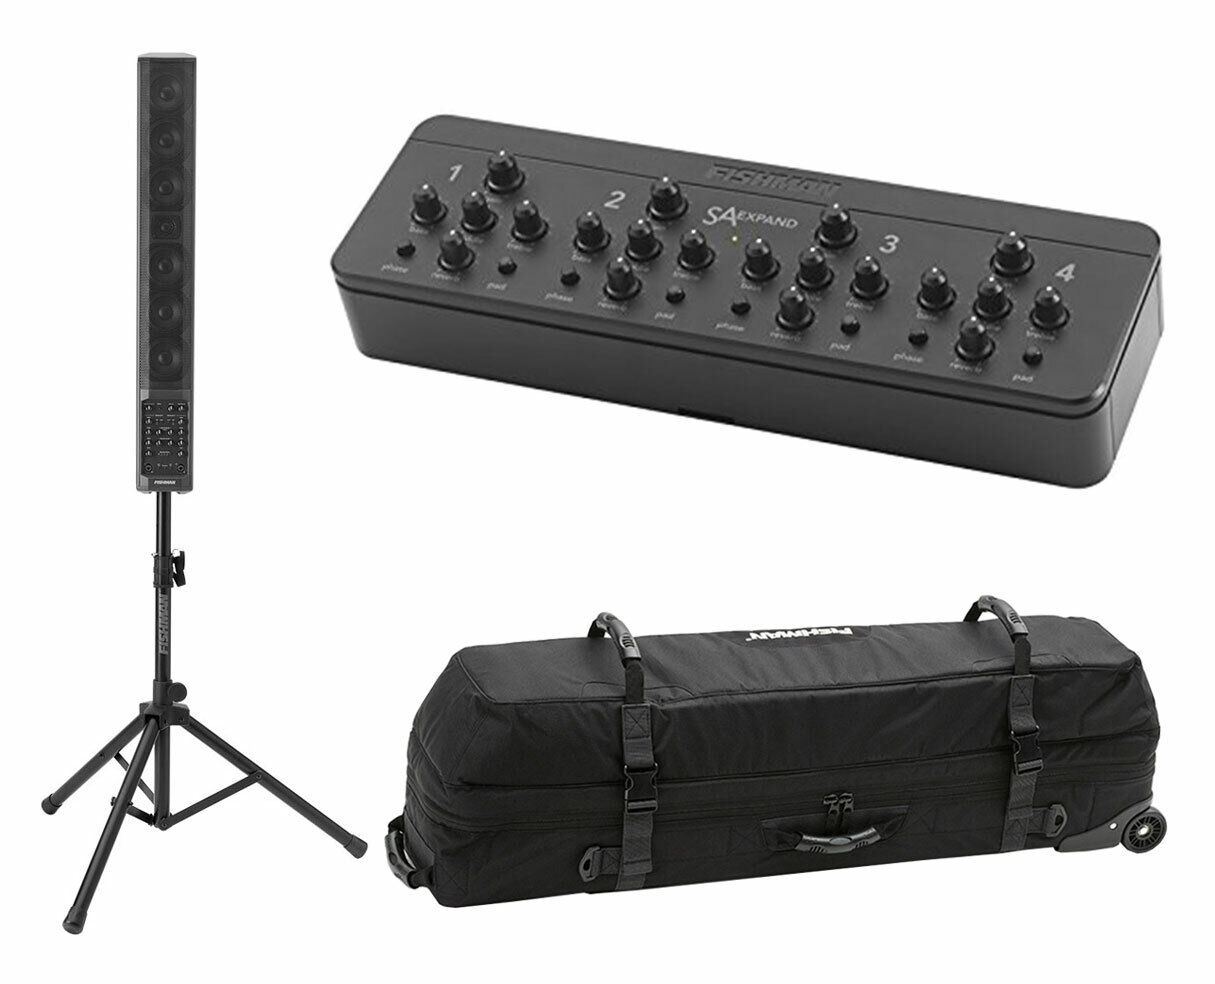 Fishman SA330x Performance Audio System + Fishman SA Expand + Deluxe Carry Bag. Buy it now for 979.90